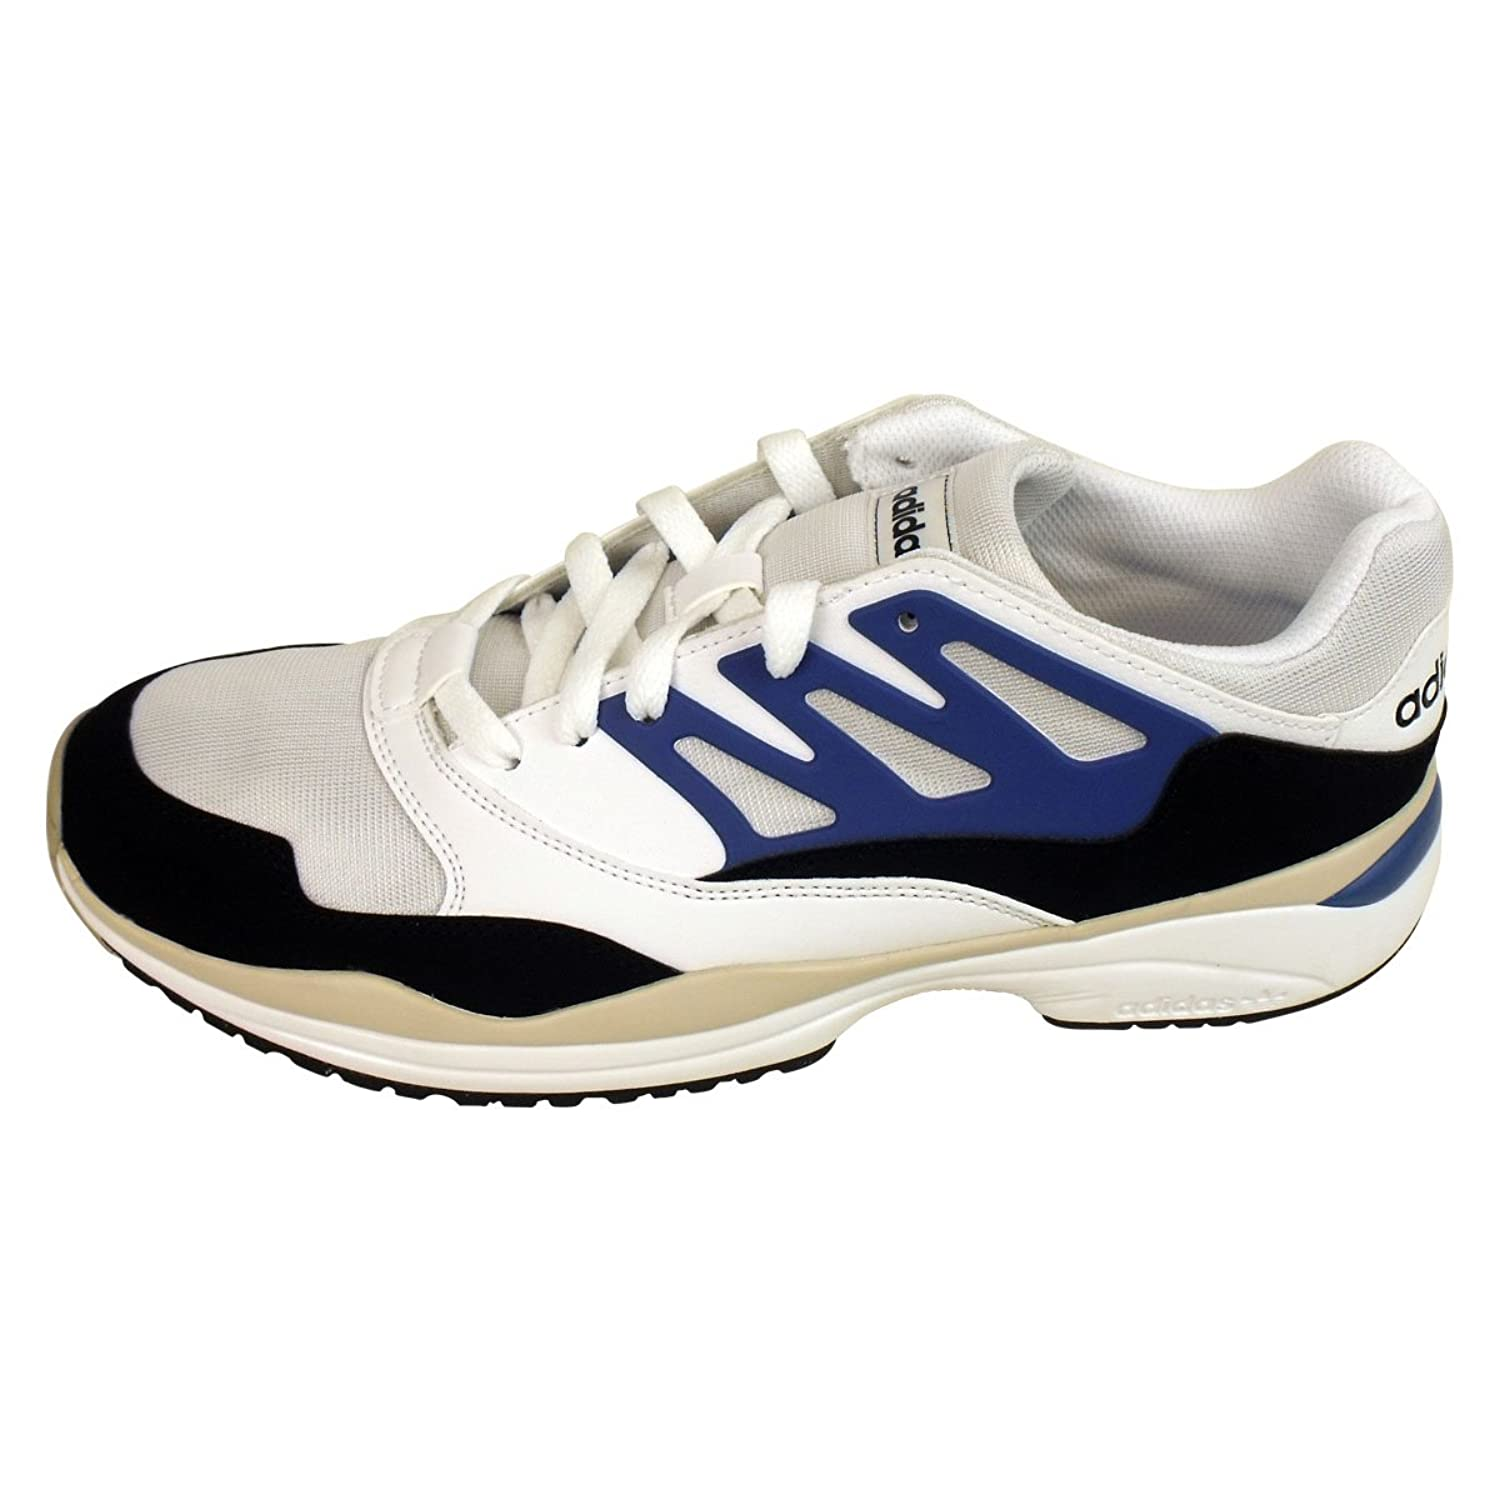 ADIDAS Originals Torsione Allegra X Uomo Scarpe da Ginnastica Running SHOES TRAINER q20336